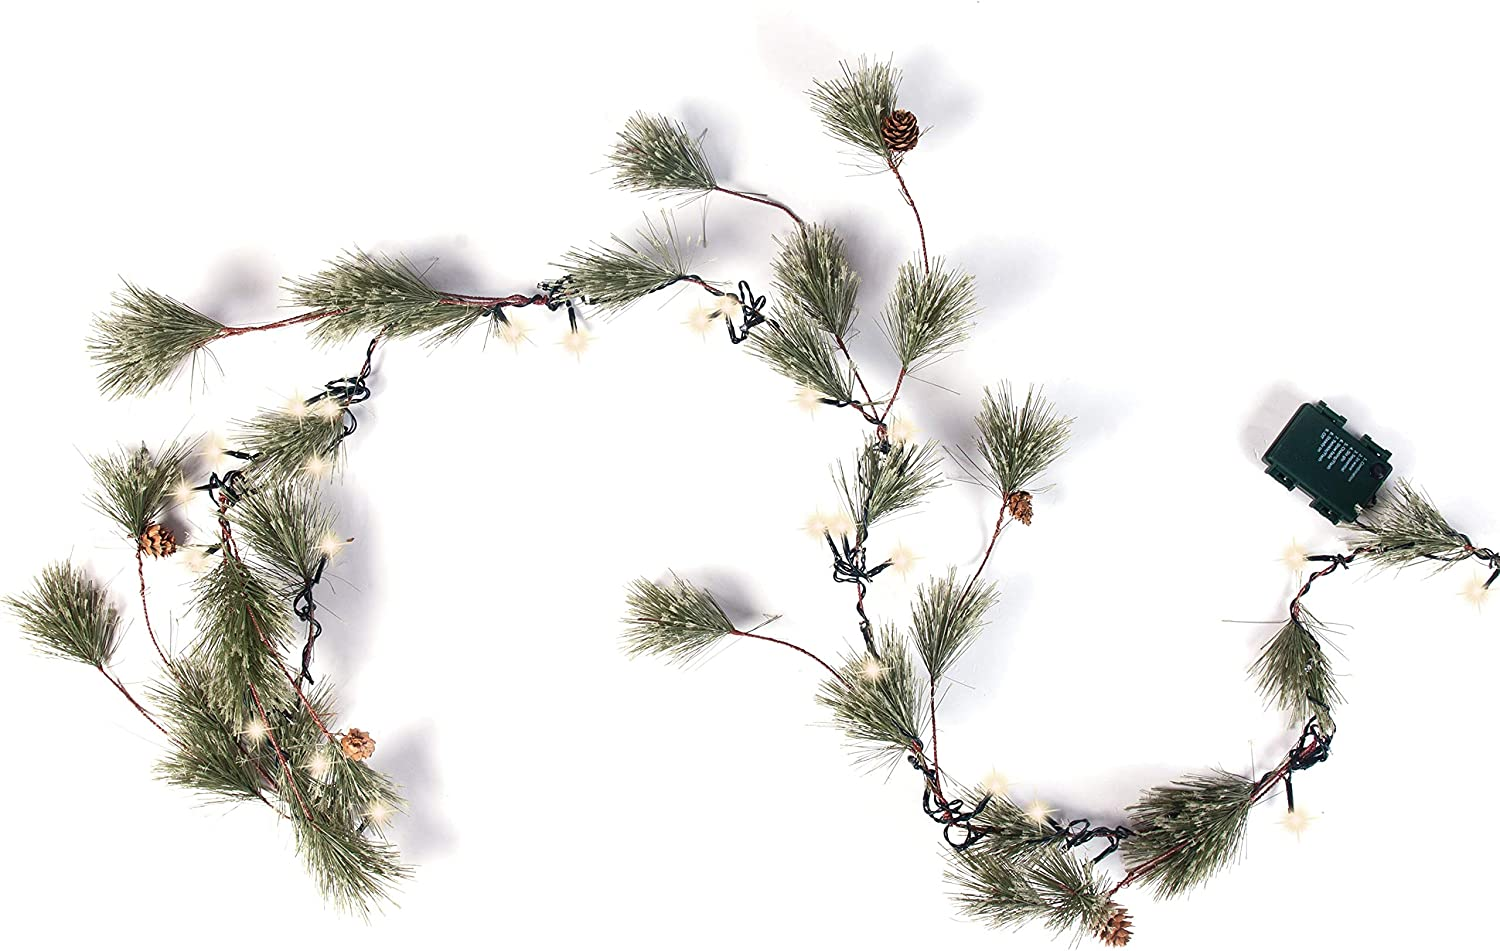 Joiedomi 6 Ft. Smokey Pine Christmas Garland Pre-Lit with 50 Clear Lights Home & Office Holiday Decoration